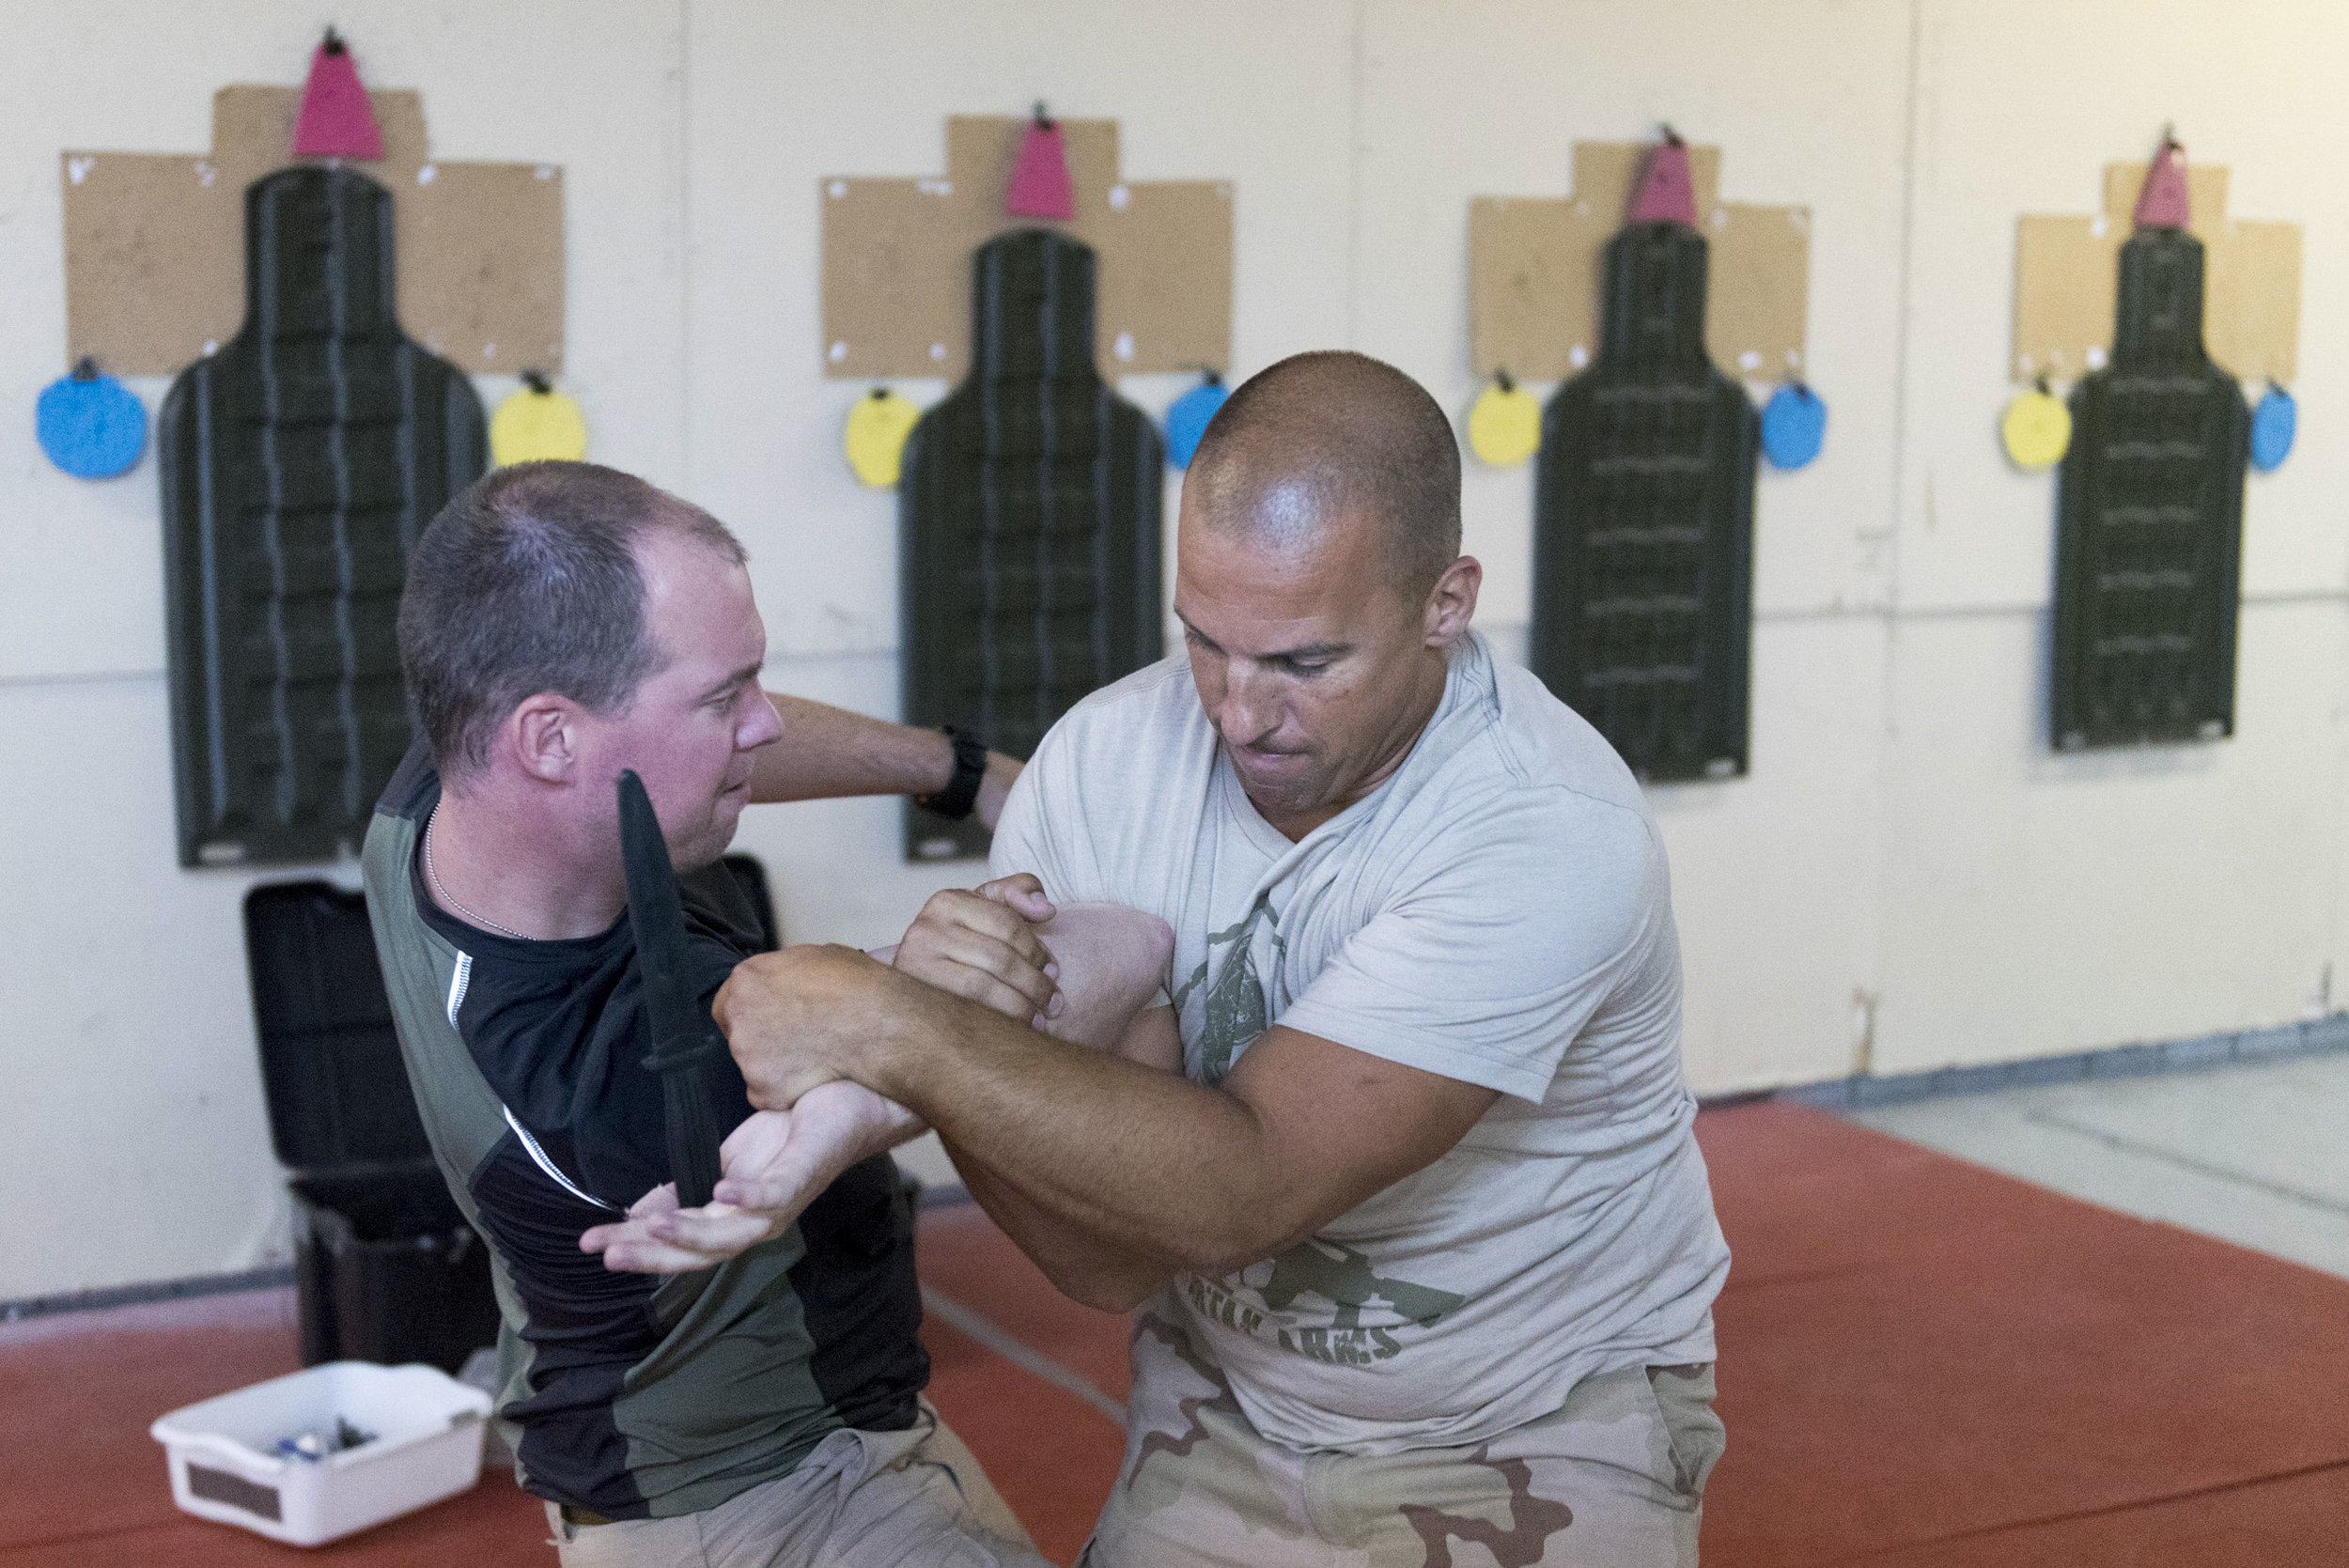 Dave Koopman, left, demonstrates combat techniques against another student at Vegas Tactical Adventures in North Las Vegas, Aug. 18, 2015